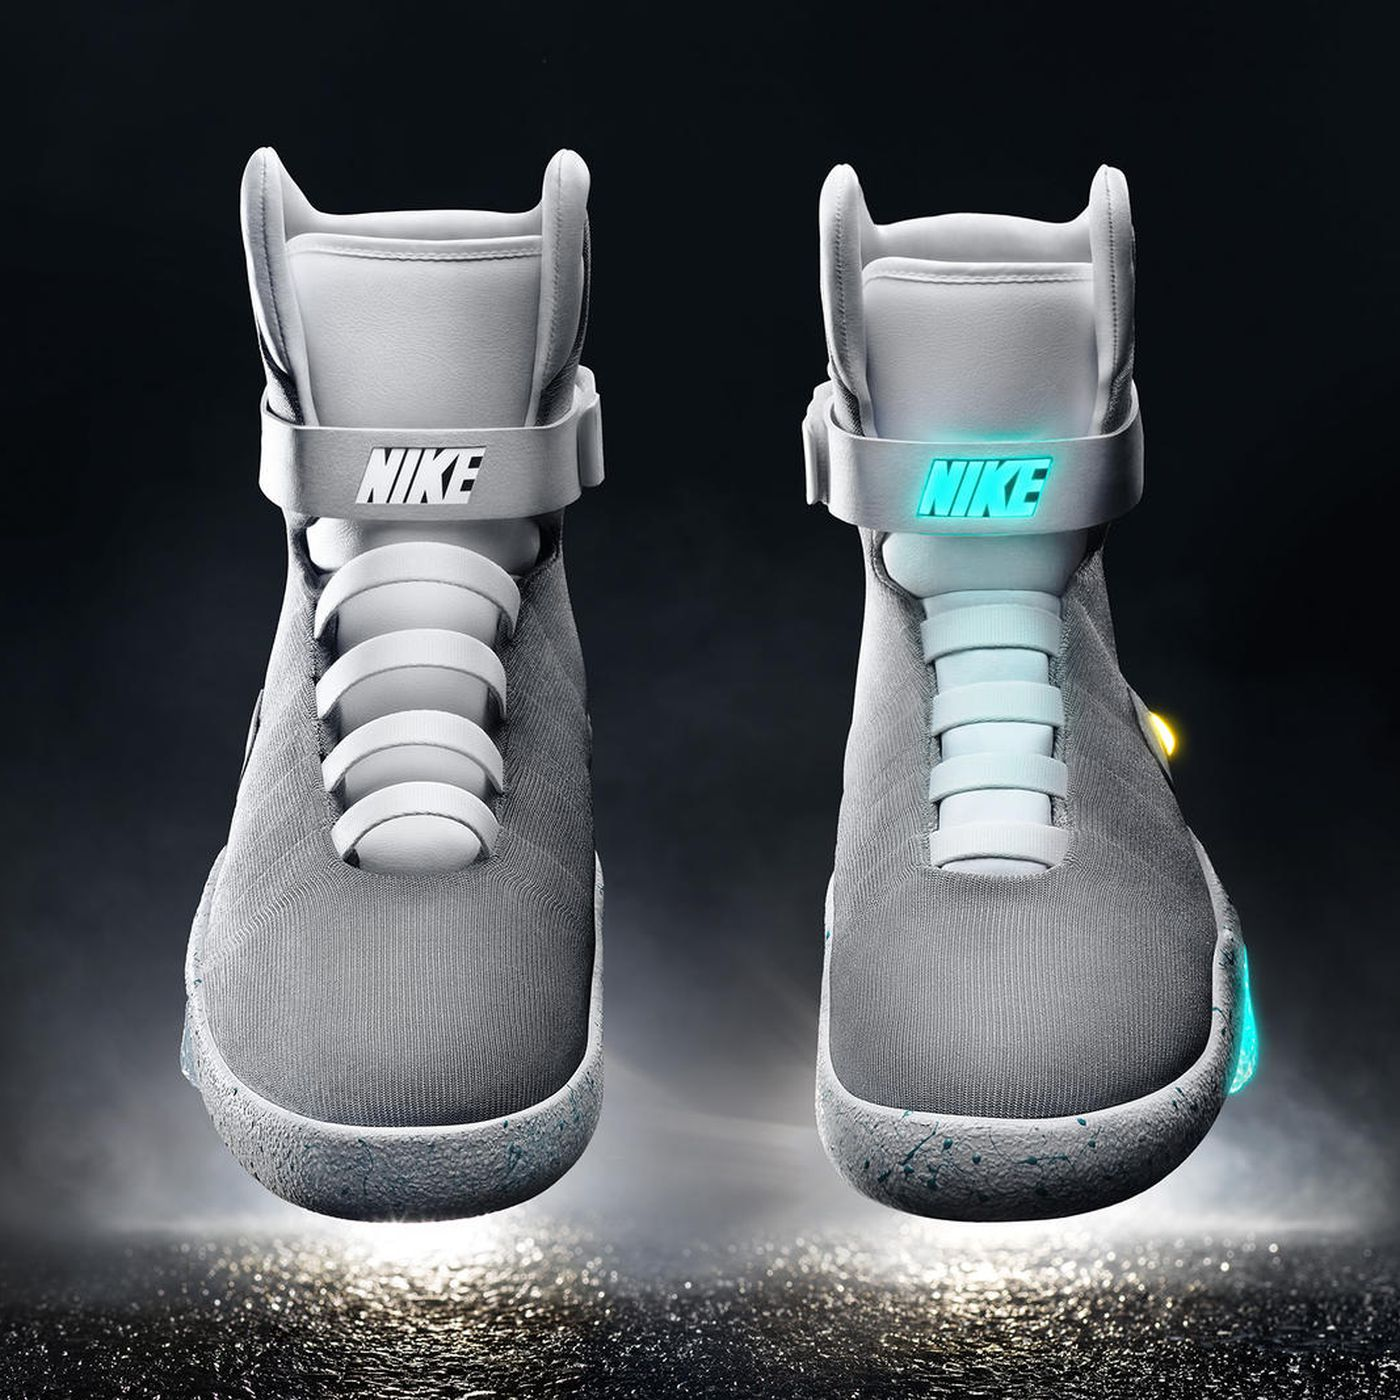 Nike will sell the self-lacing sneakers from Back to the Future in 2016 -  The Verge 886e77f56